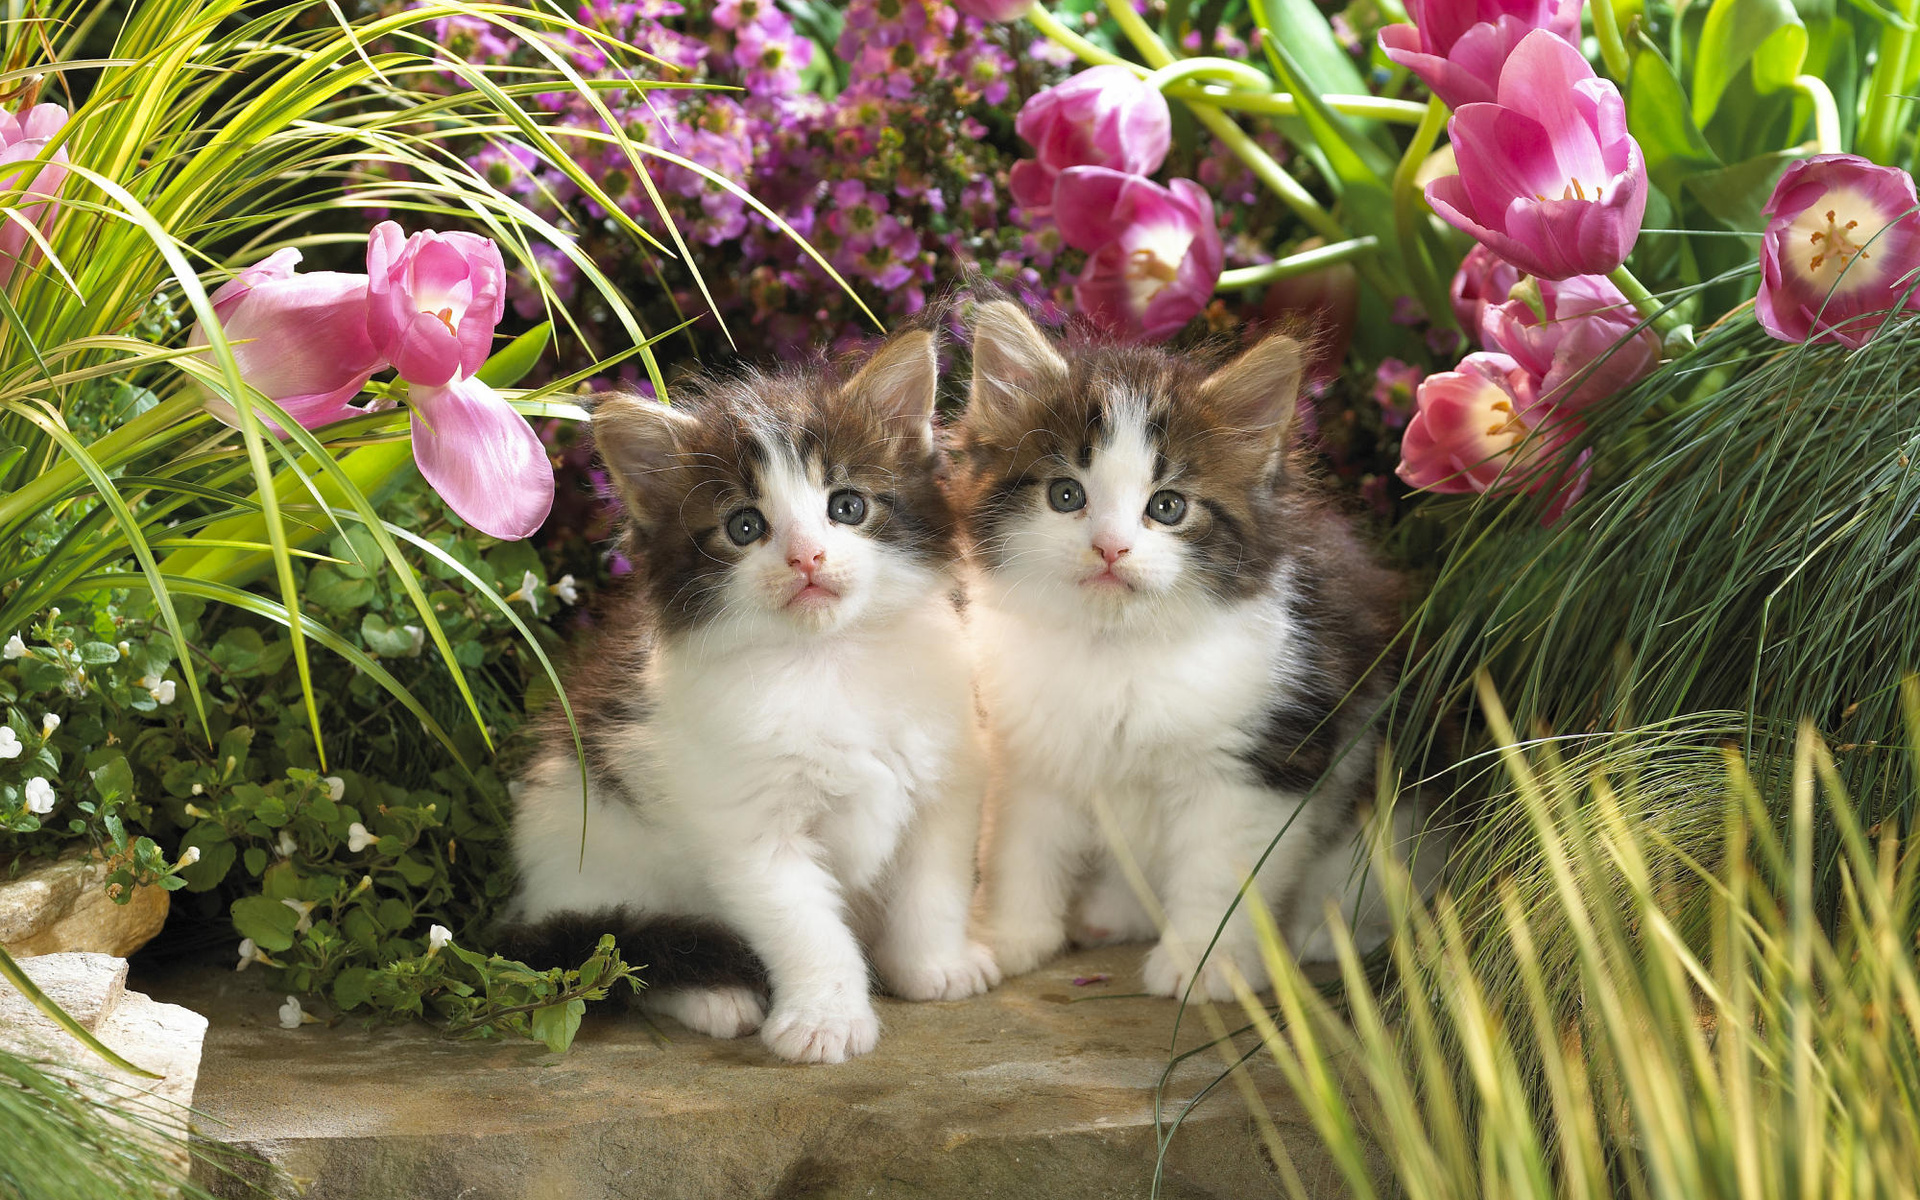 animals cats babies felines kittens cute garden flowers nature